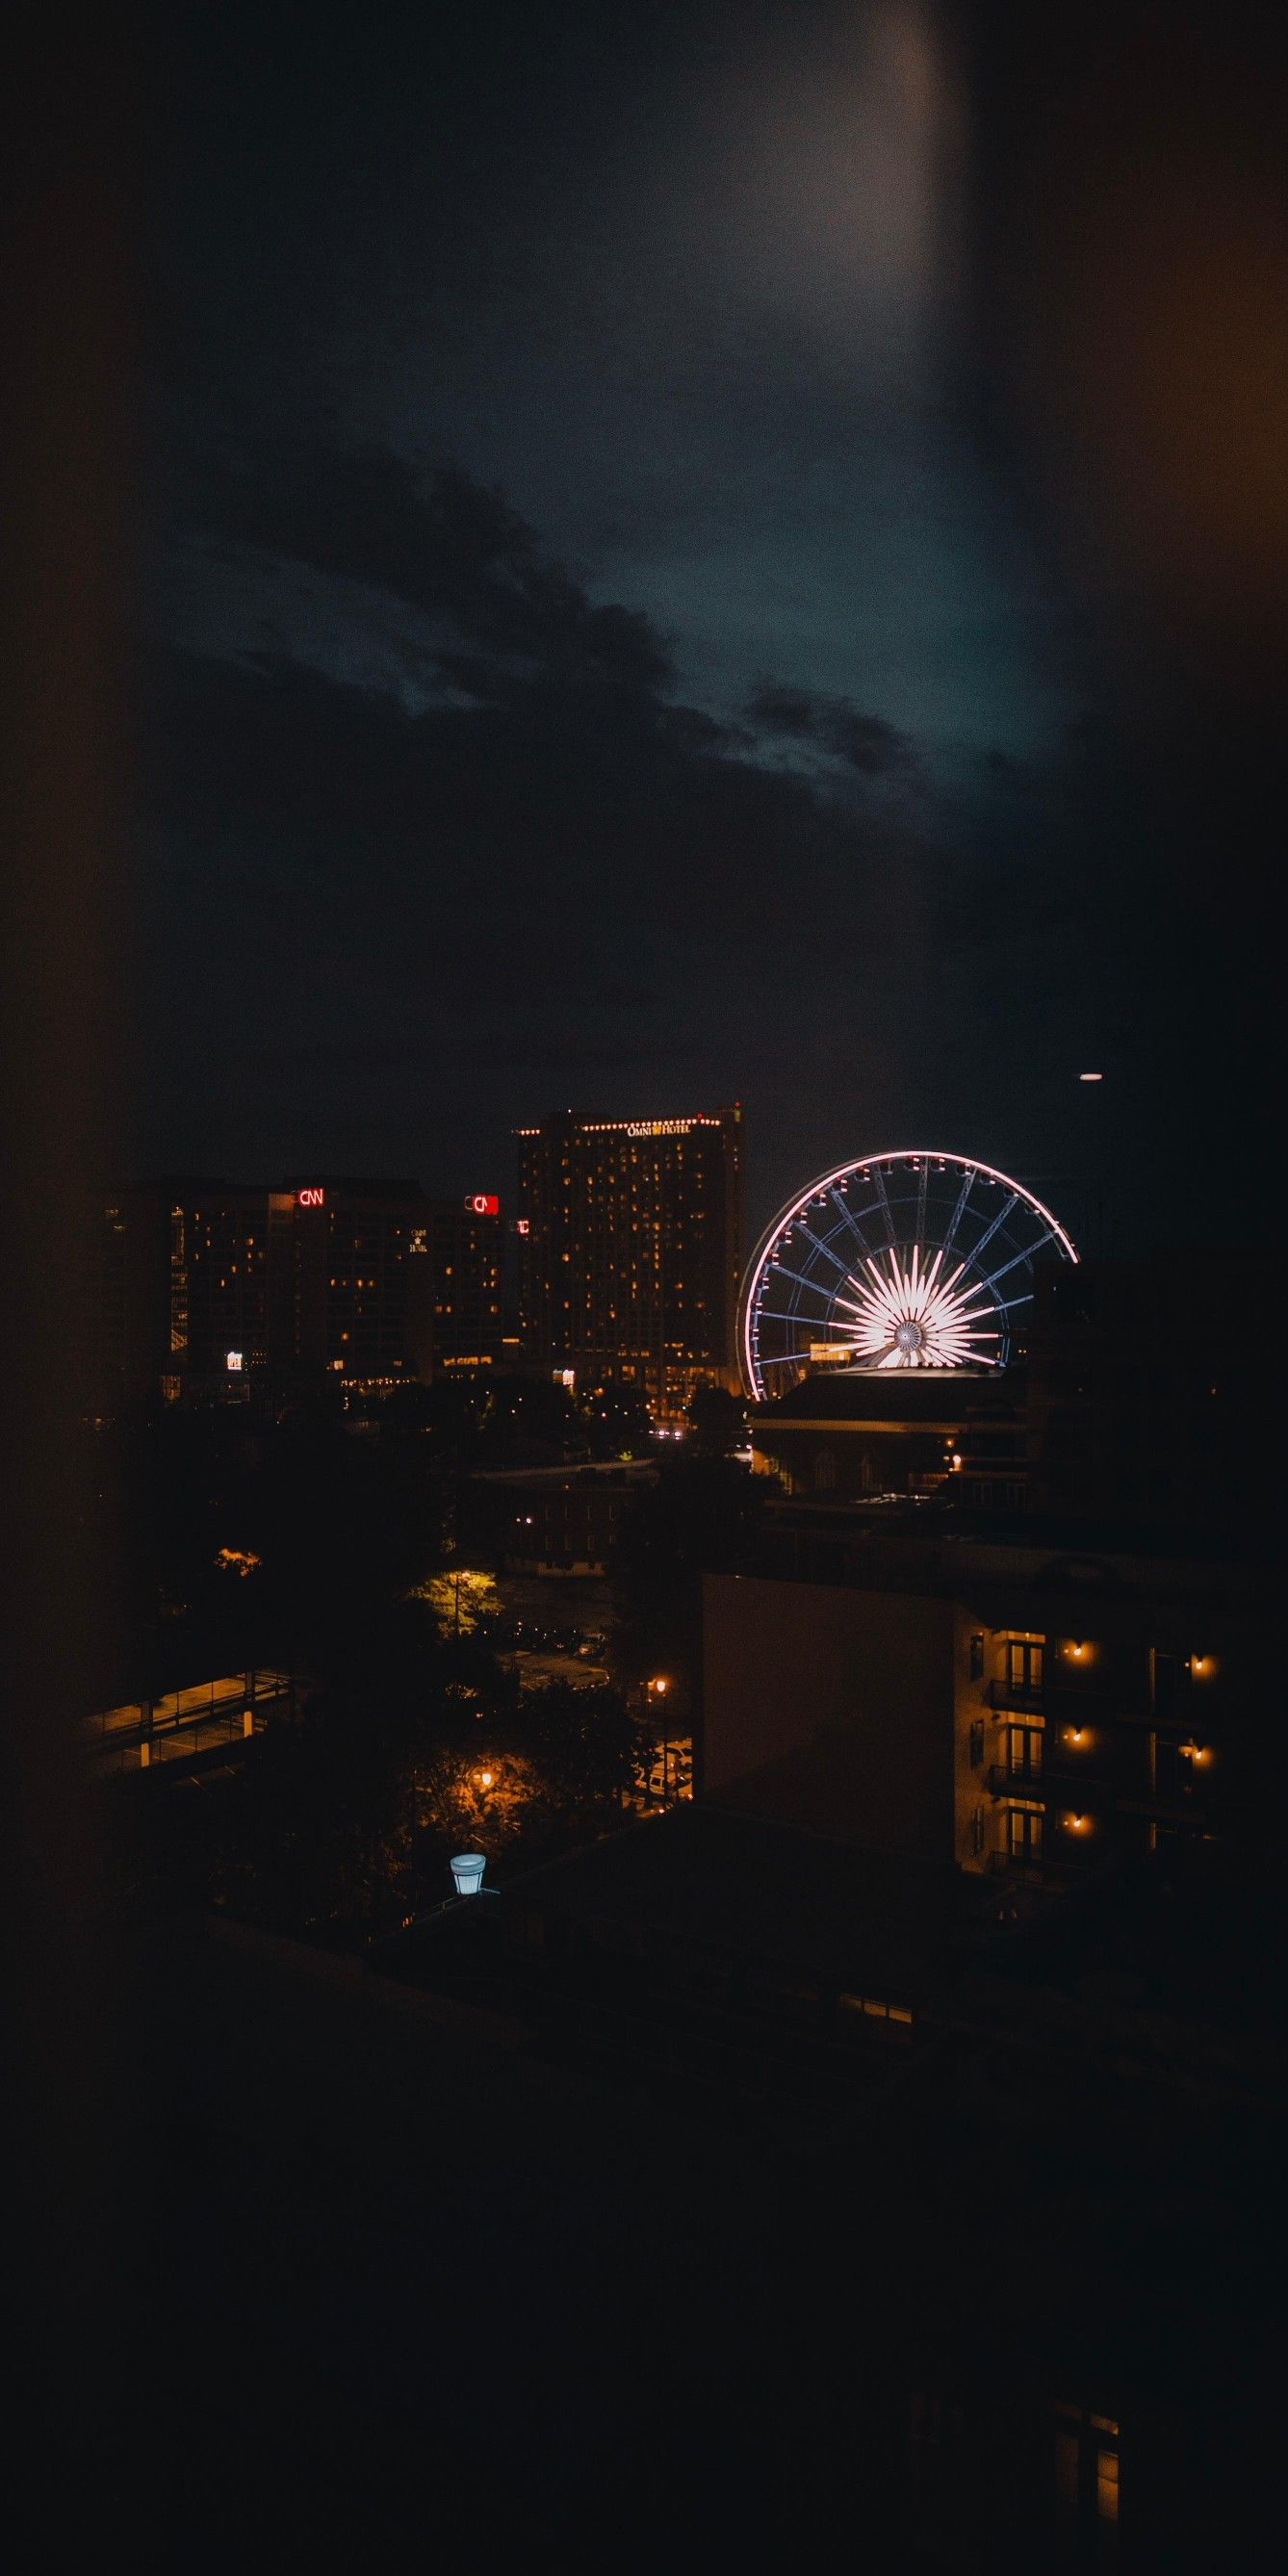 Ferris Wheel Night Landscape Photography Night Landscape